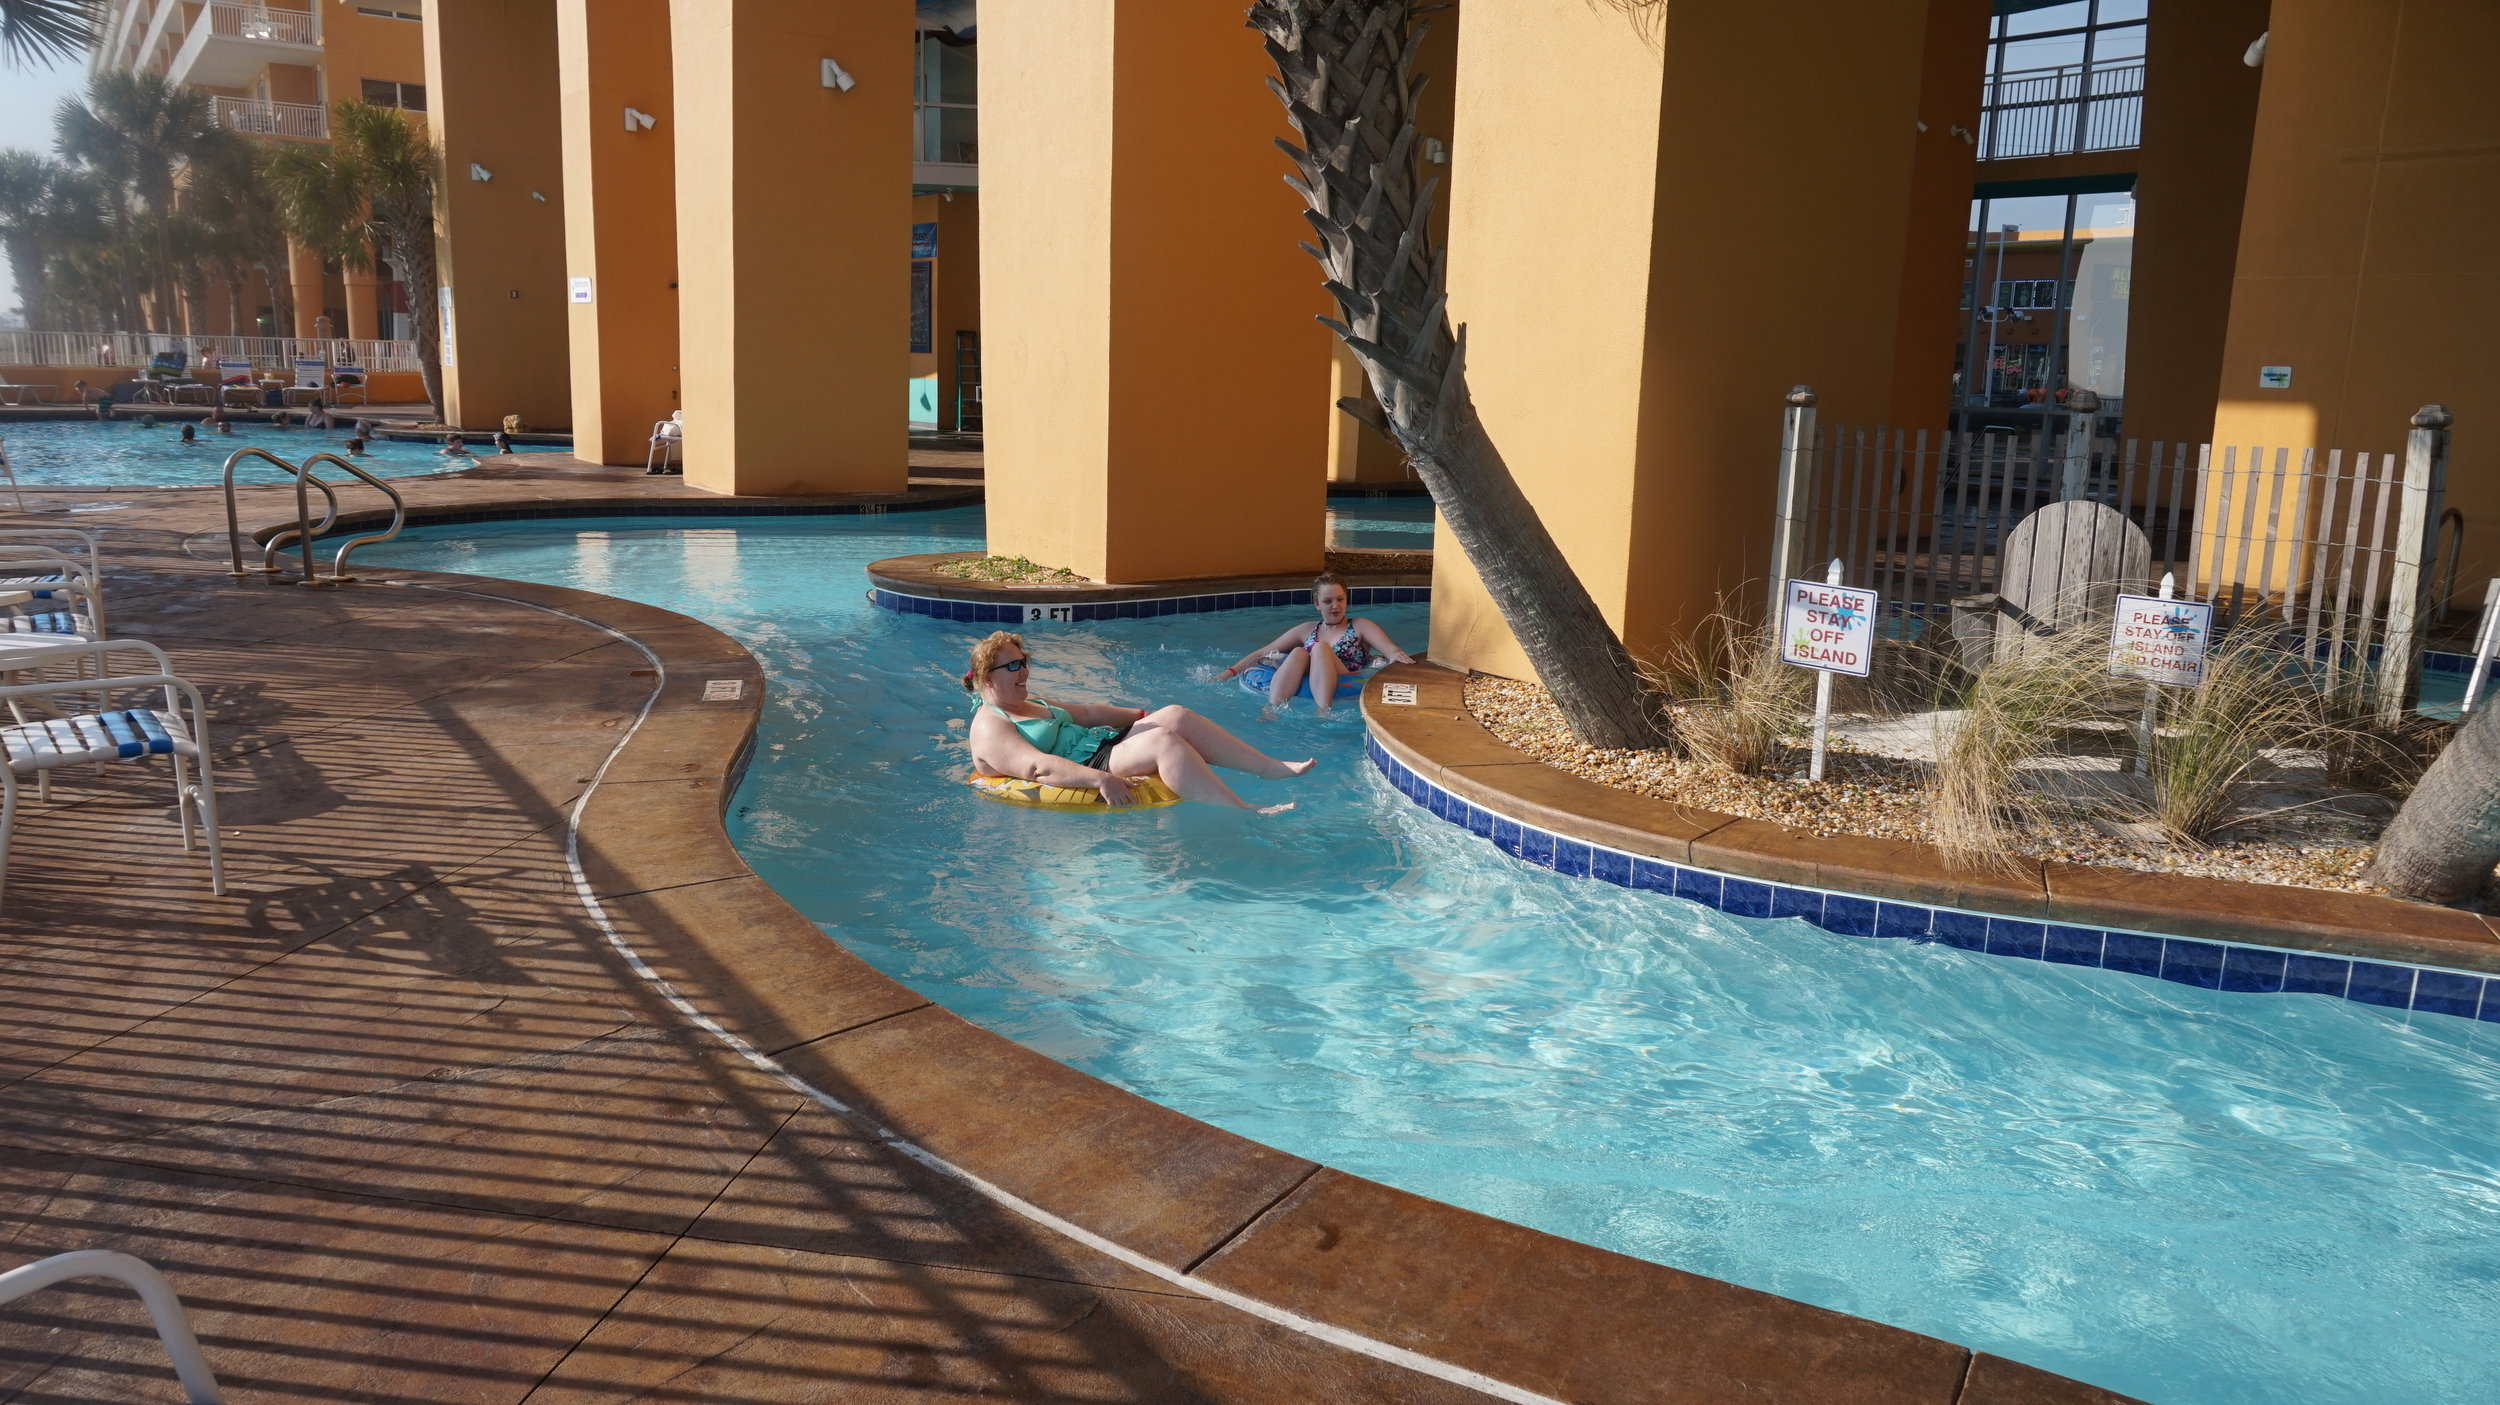 Wendy and Rachel on the lazy river.